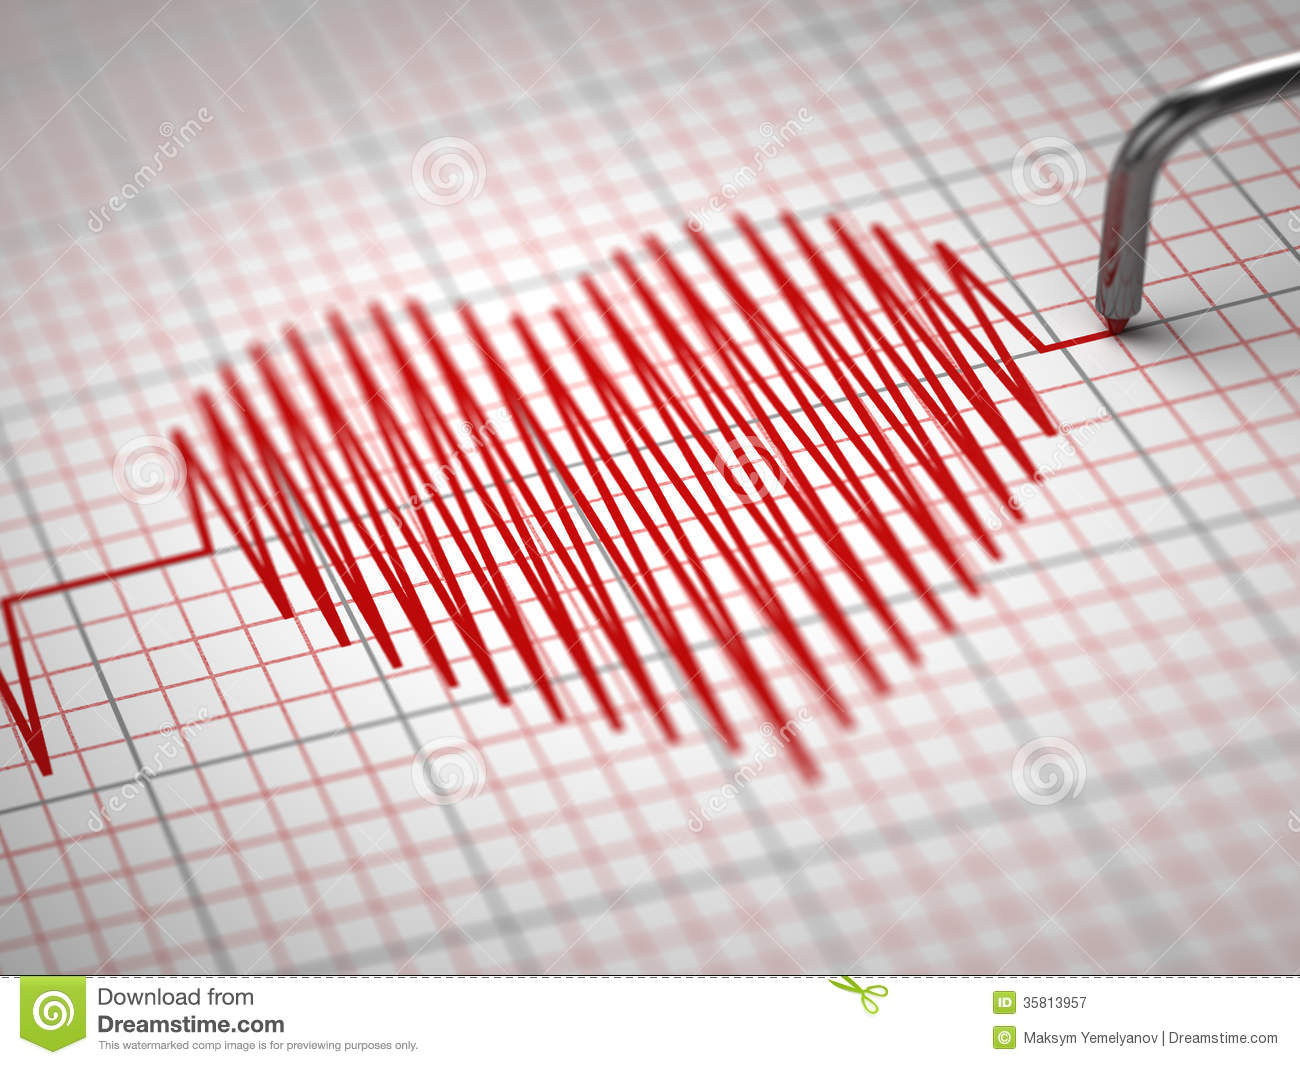 ecg  electrocardiogram and heart beat shape  royalty free